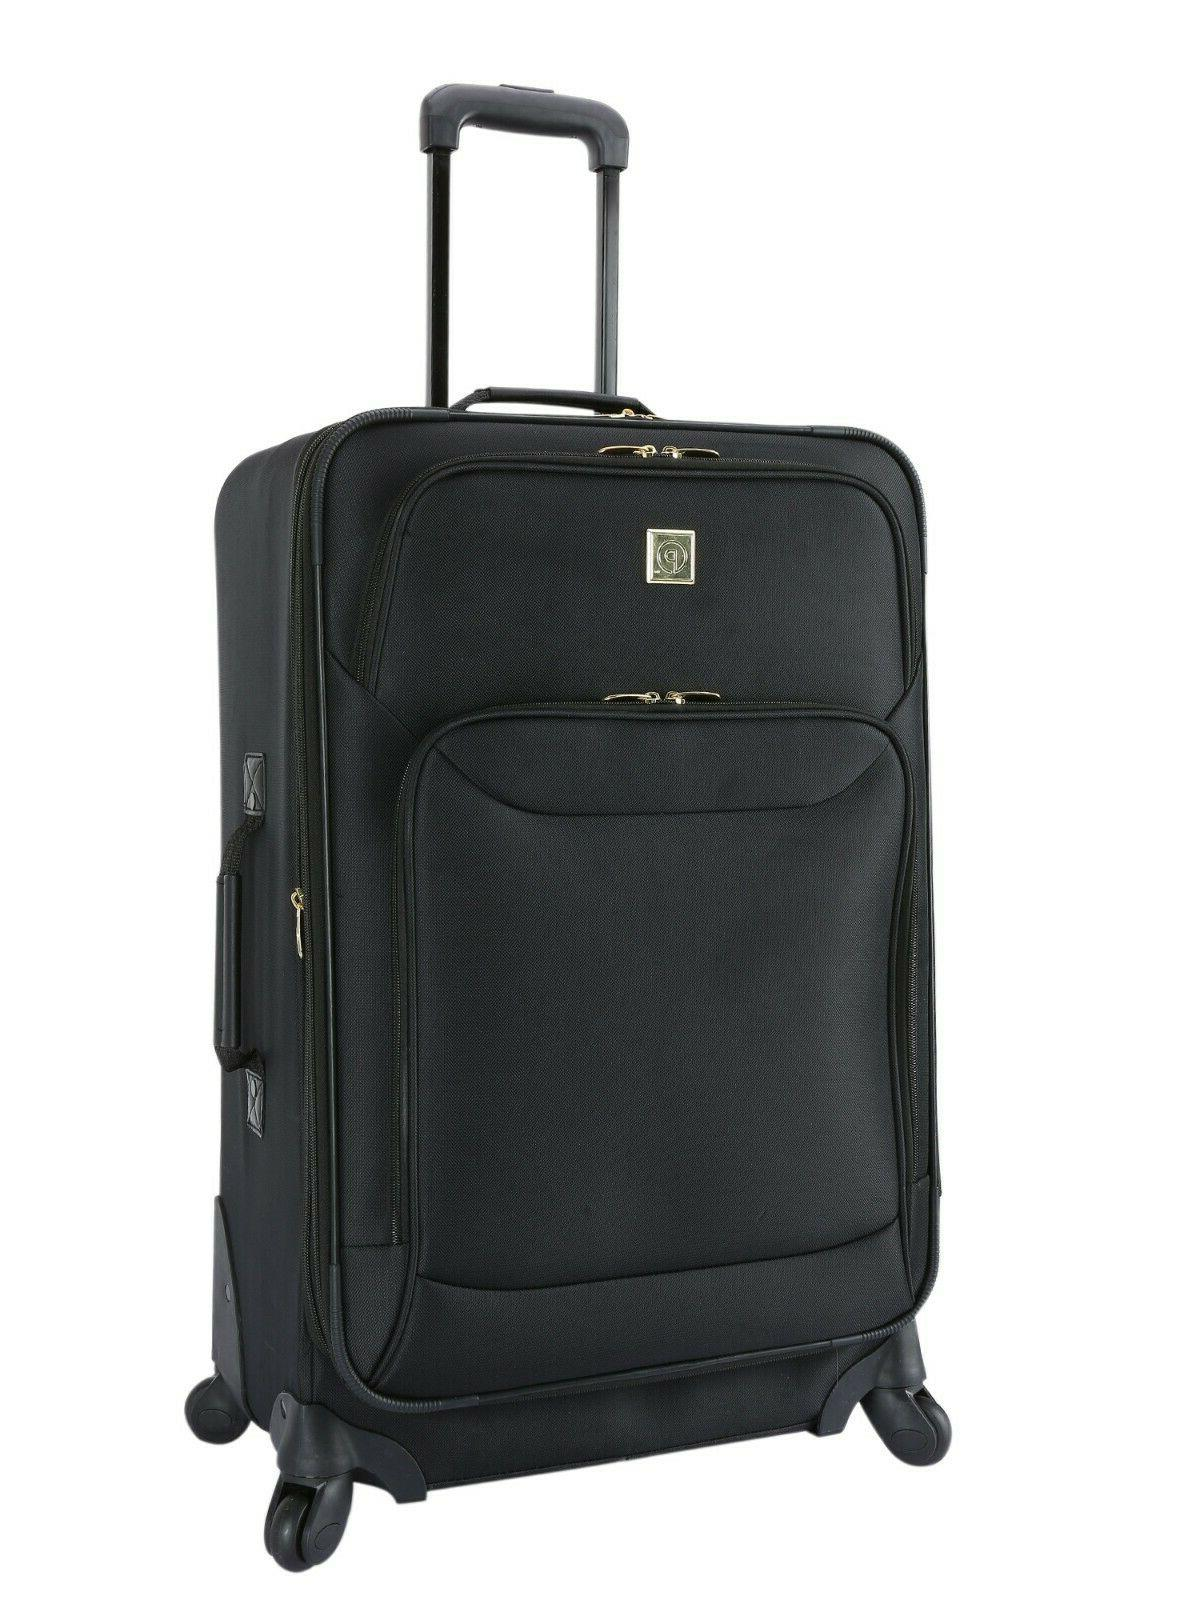 Luggage Set Piece Spinner Top Quality- 21 and inch BLACK